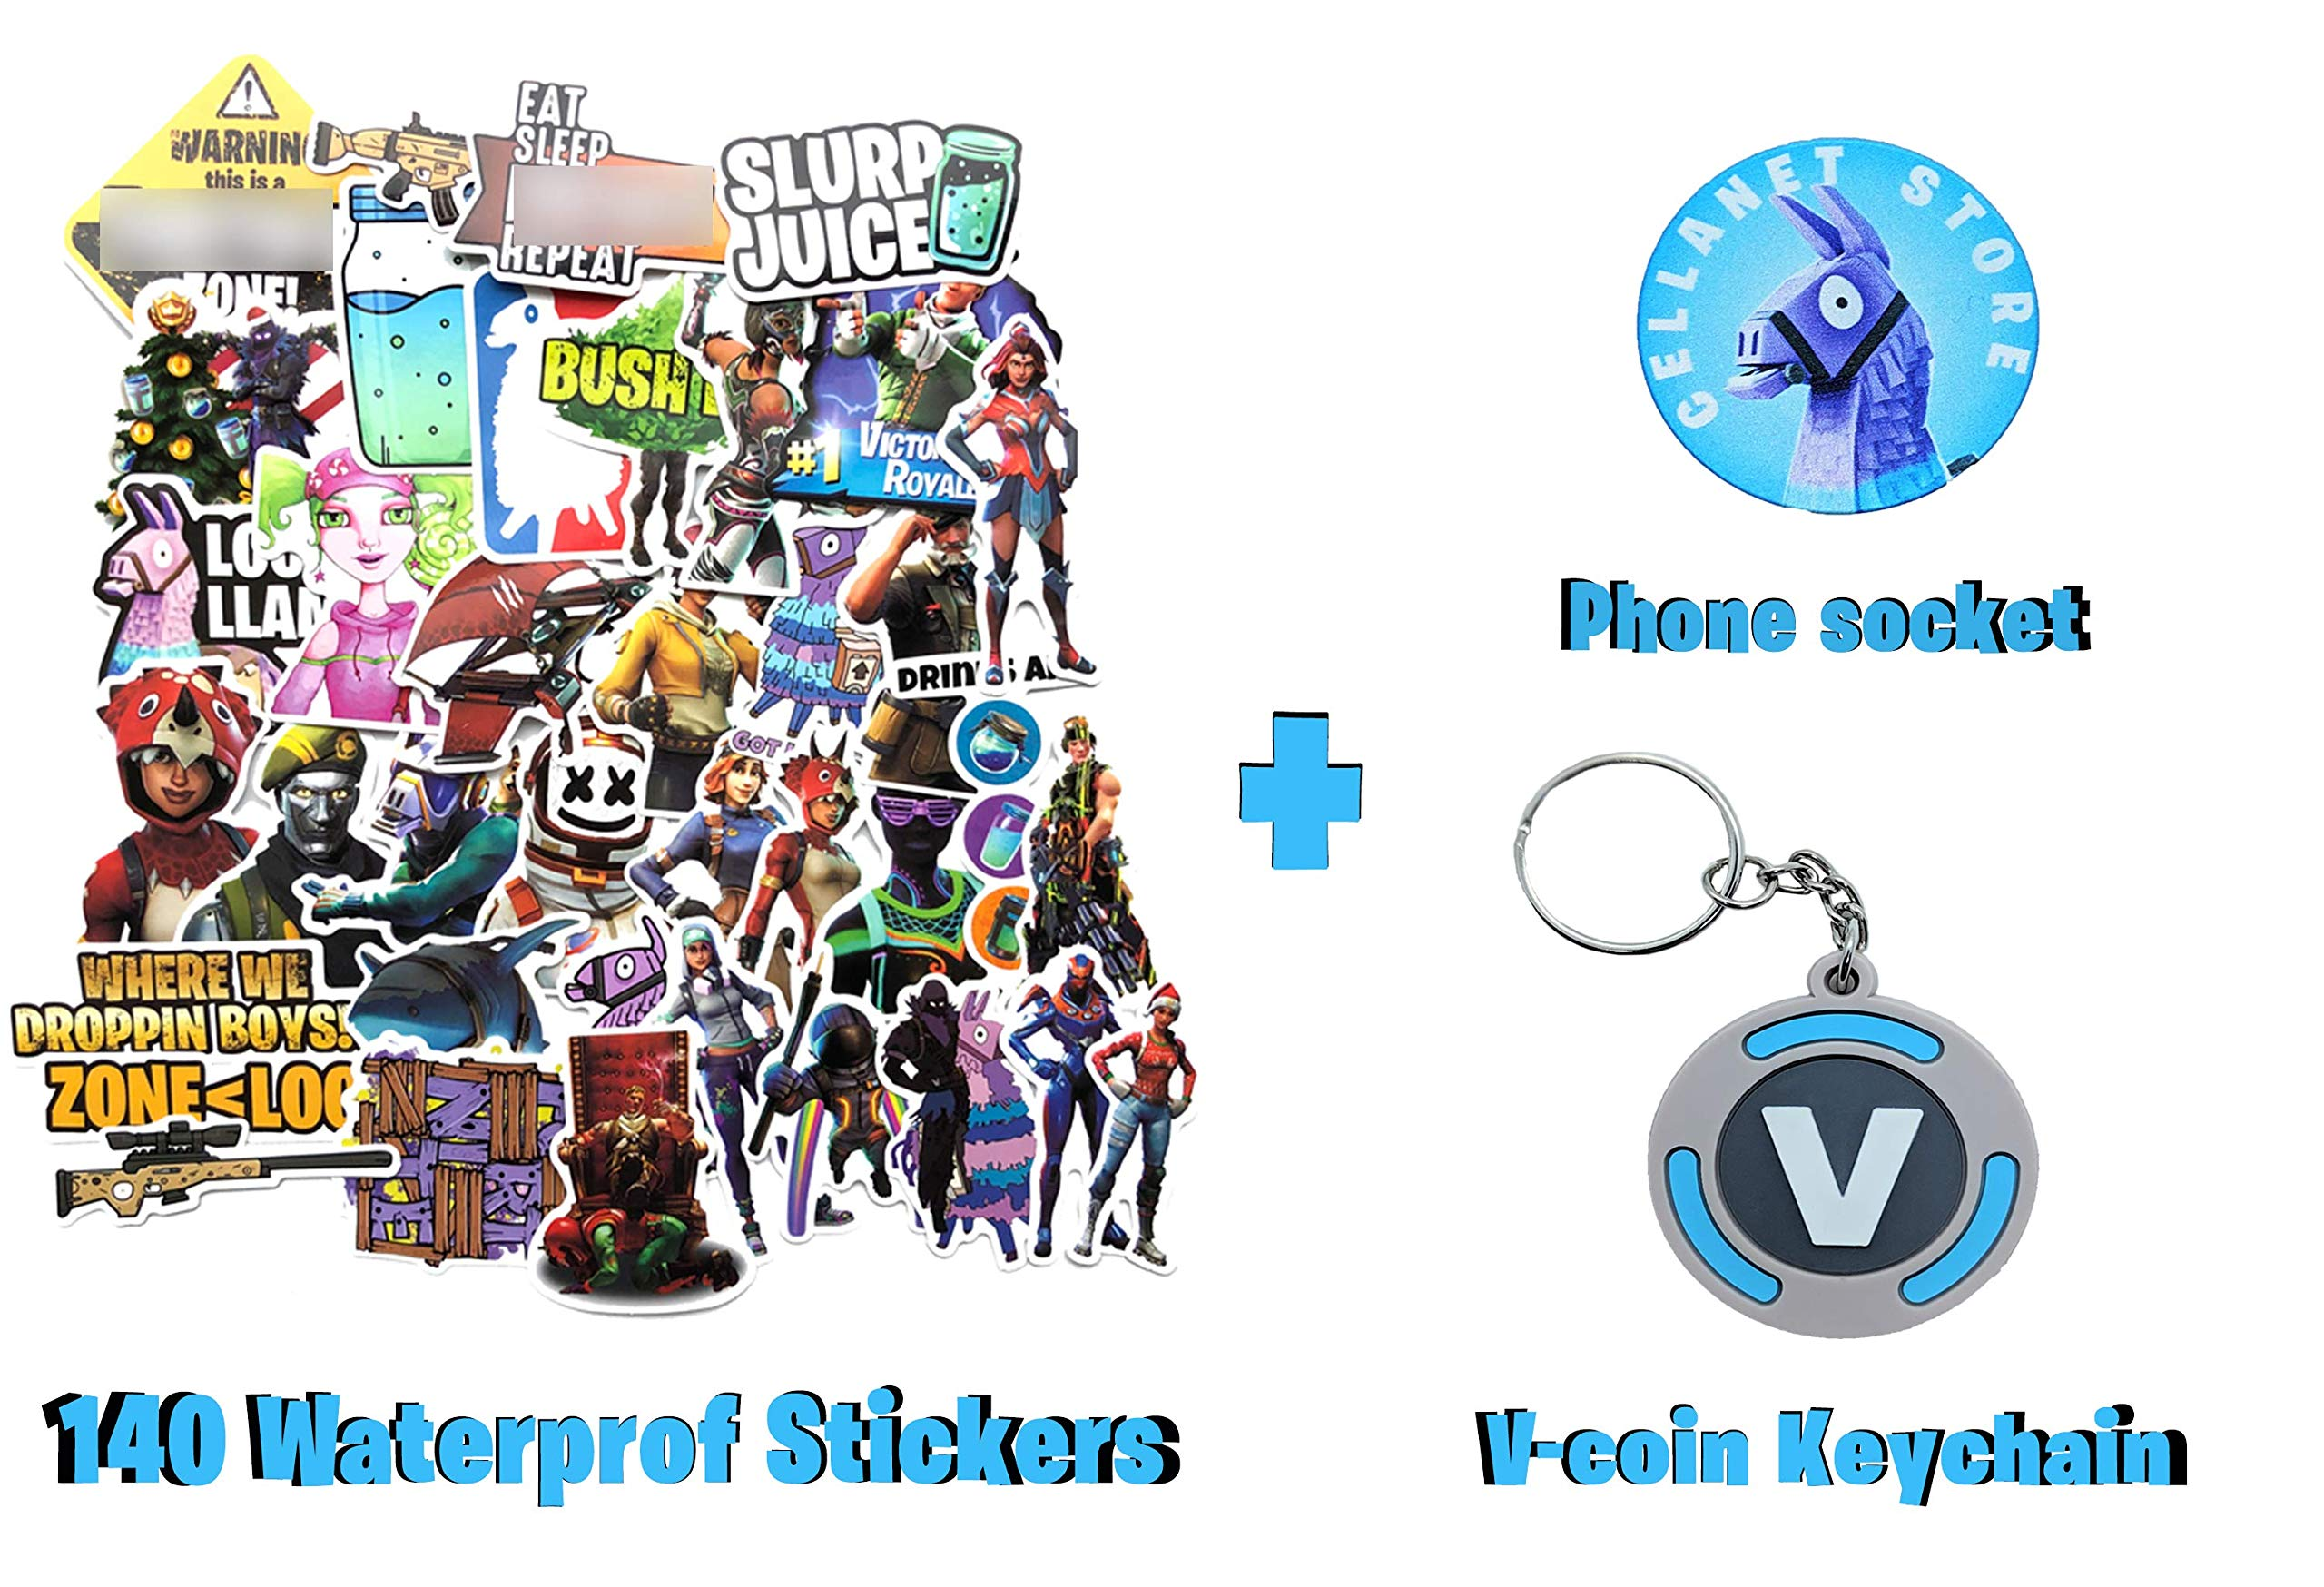 [ Valuable Pack ] 140 Waterproof Game Party Suplies Stickers for Laptop + Llama Phone Stand + V-Coin Keychain for Car Motorcycle Bicycle Luggage Decal Graffiti Patches Skateboard Stickers